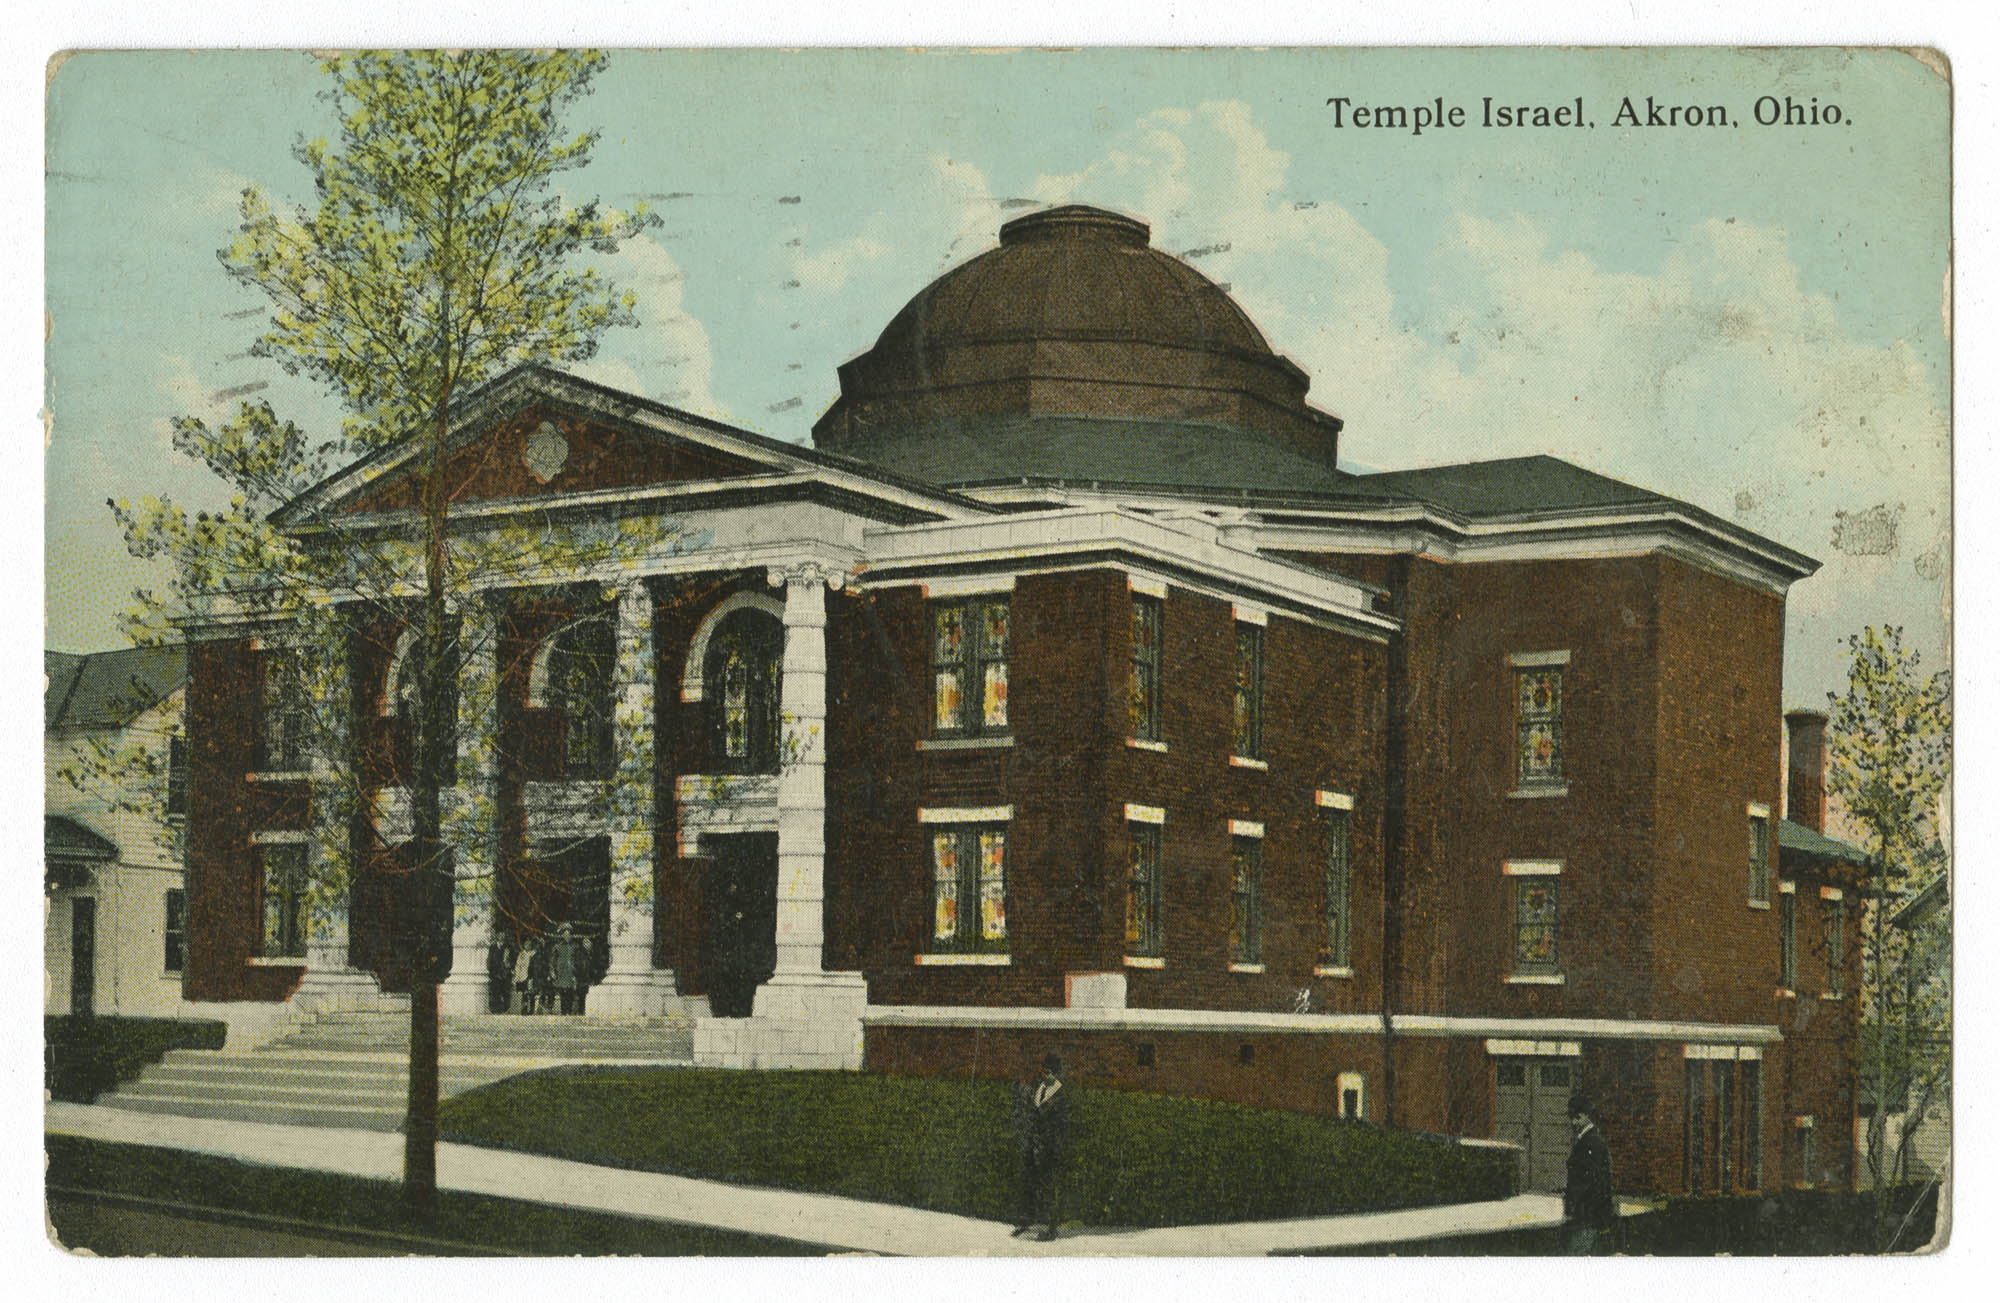 Temple Israel, Akron, Ohio